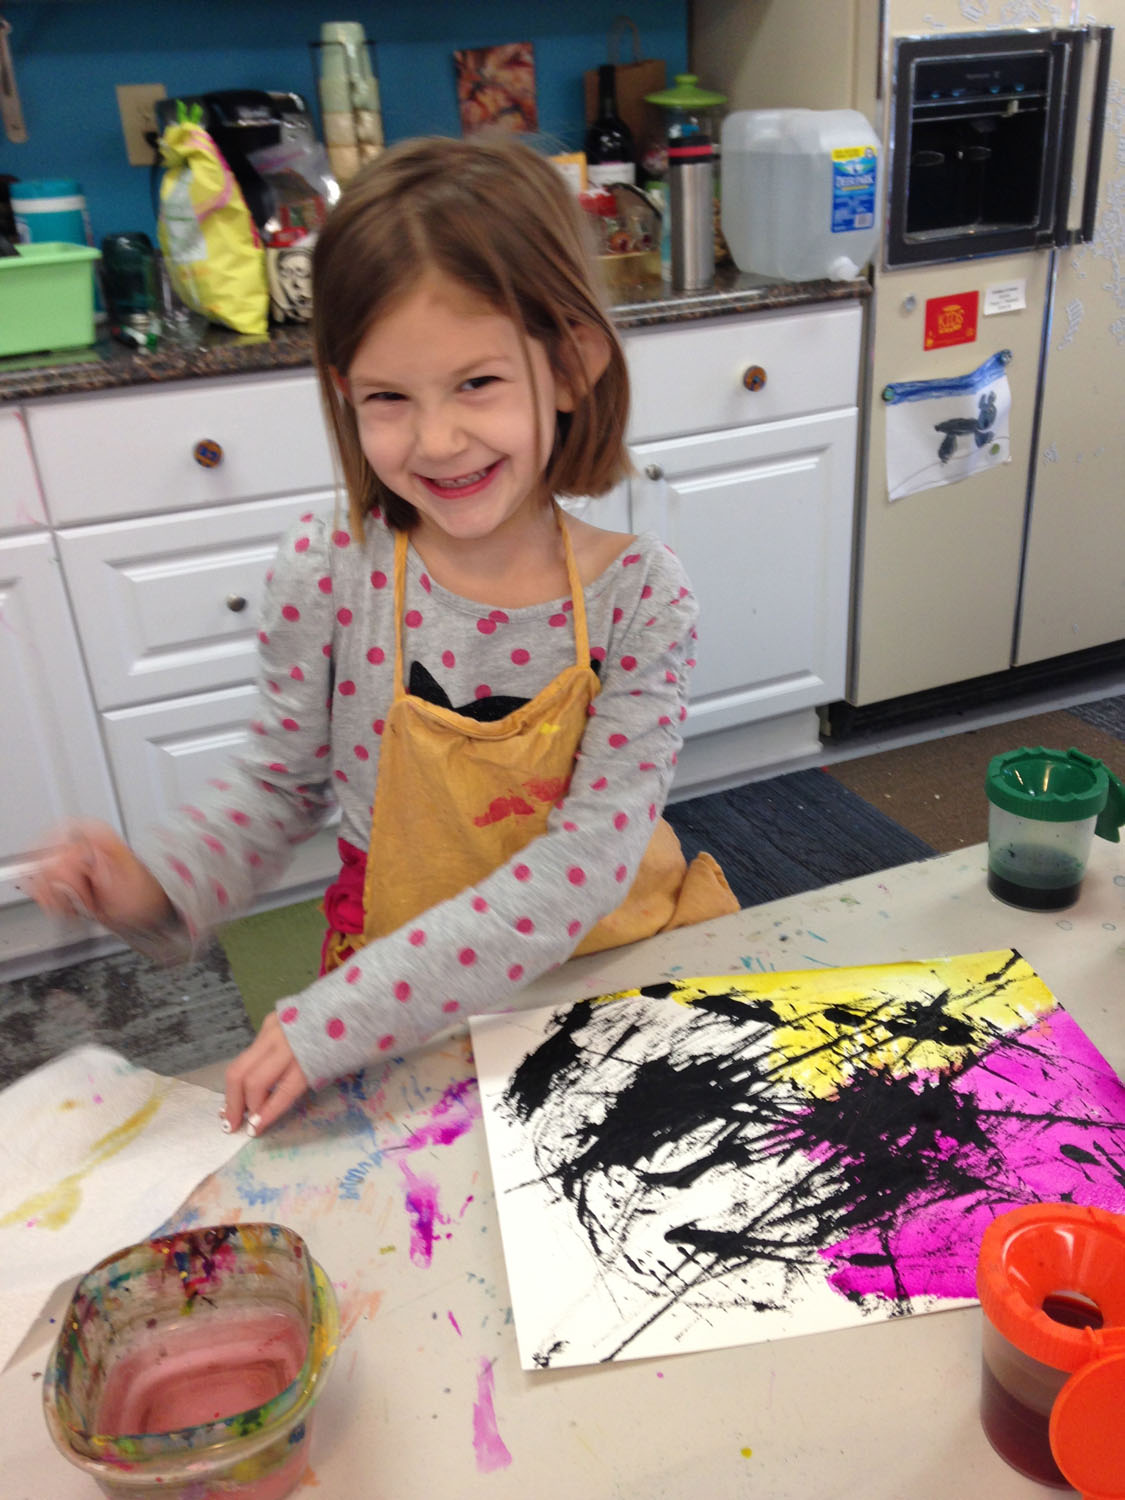 kids-art-parties-classes-and-camps-in-greensboro-nc-with-artist-tracey-j-marshallIMG_0754.jpg